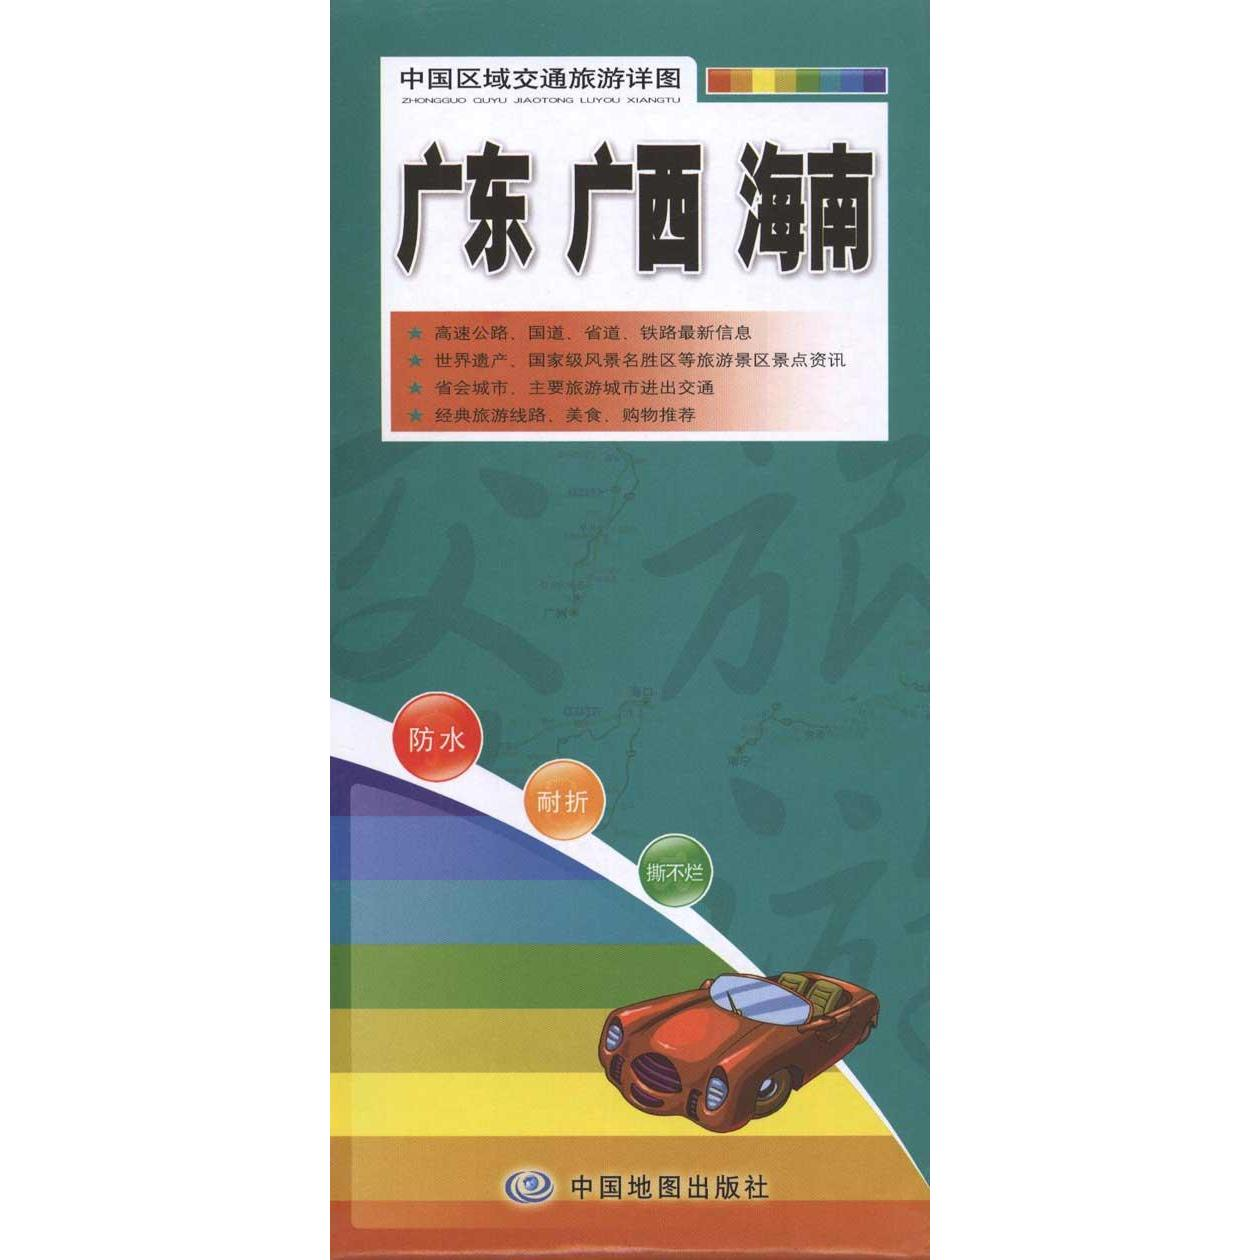 China regional transportation travel detailing guangdong guangxi and hainan map genuine selling books